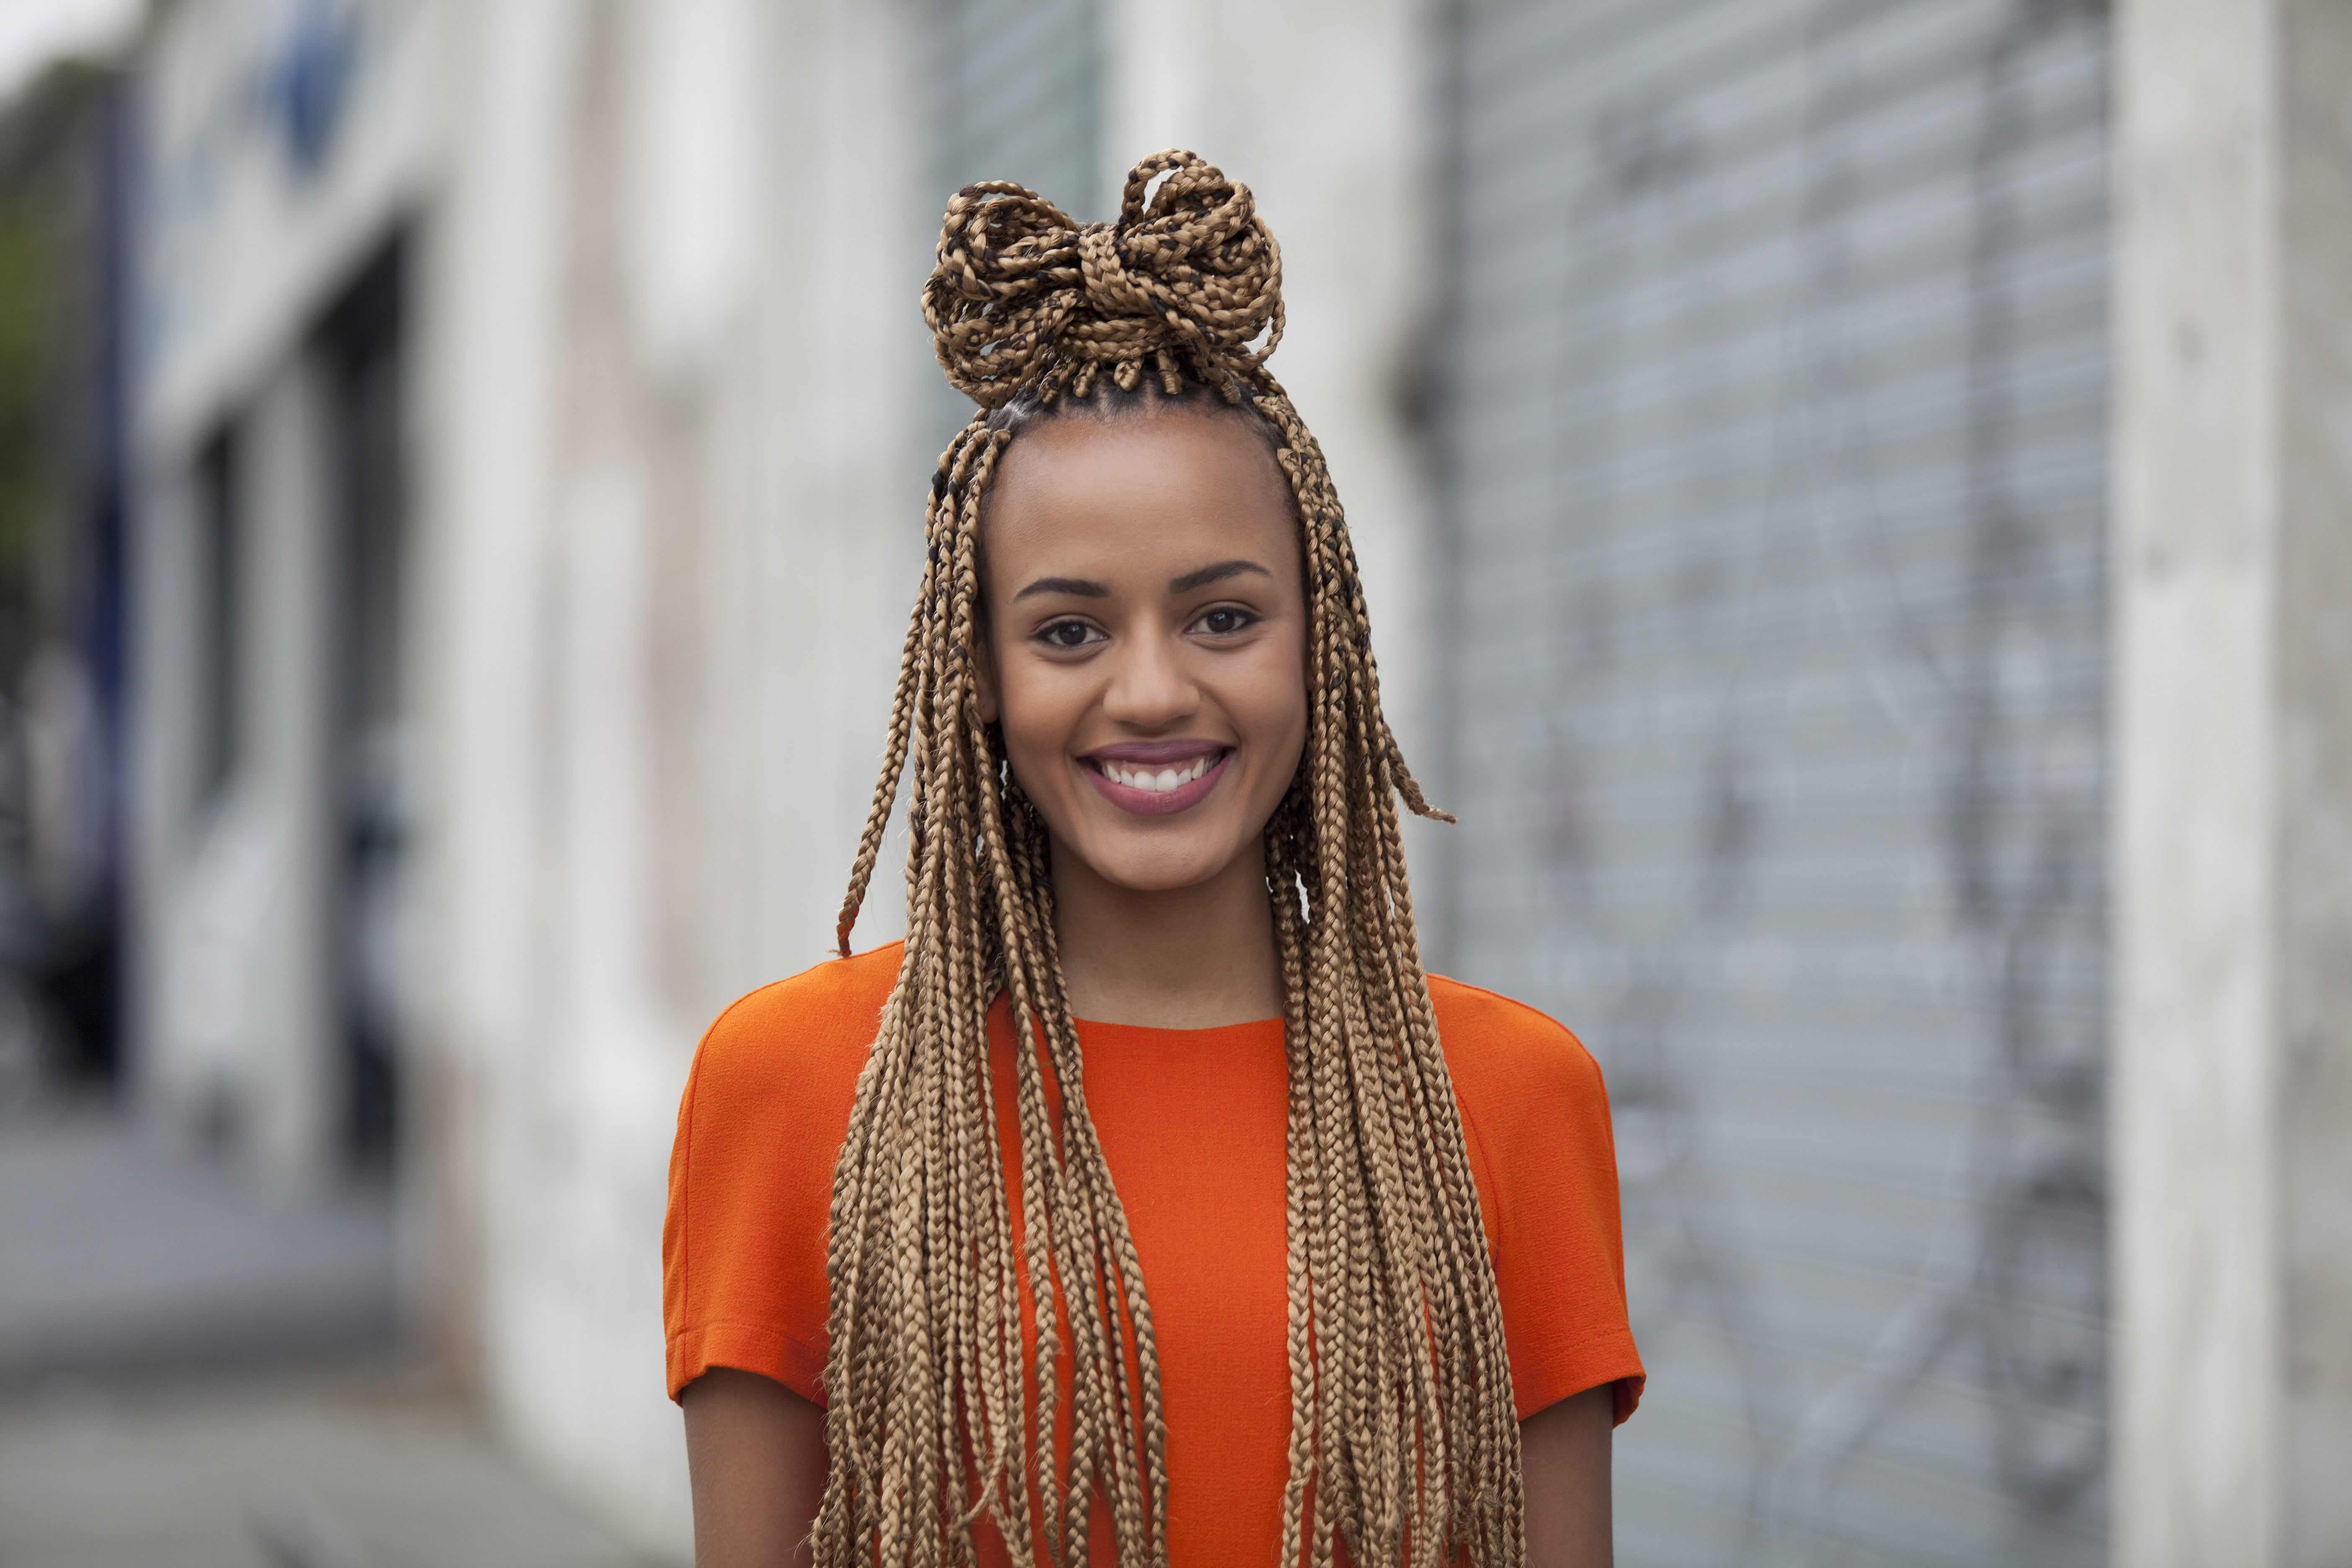 Box Braids: 13 Pretty Hairstyles To Inspire Your Next Look Within Well Liked Box Braids Bun Hairstyles (View 5 of 20)